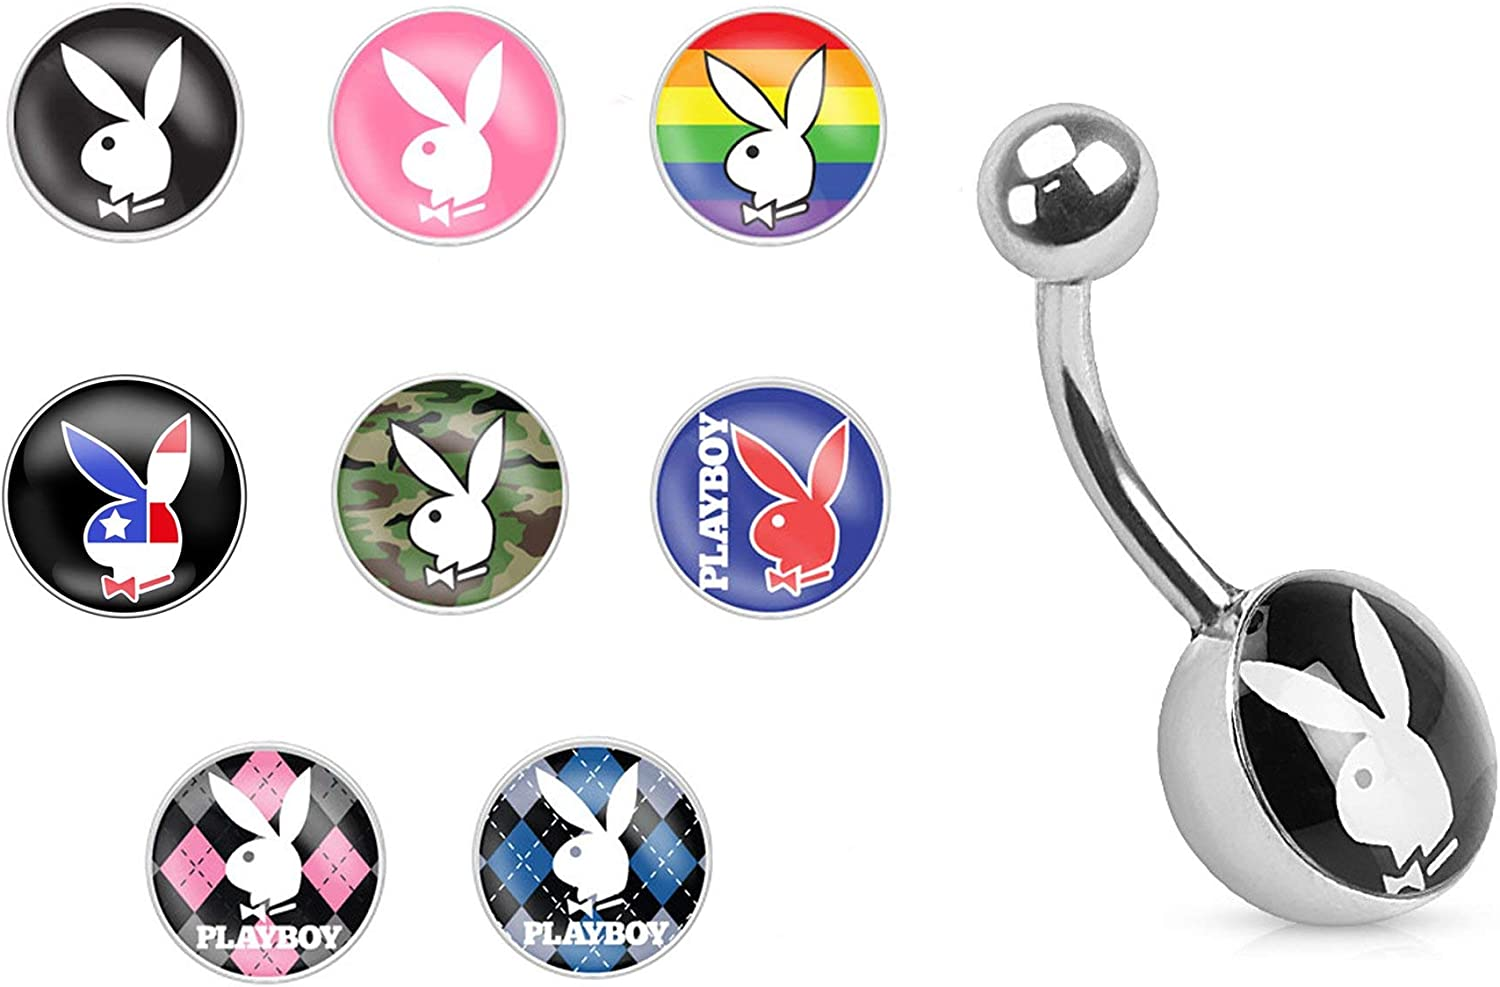 Forbidden Body Jewelry 14g Surgical Steel Playboy Graphic Inlay Belly Ring (Choose Style)